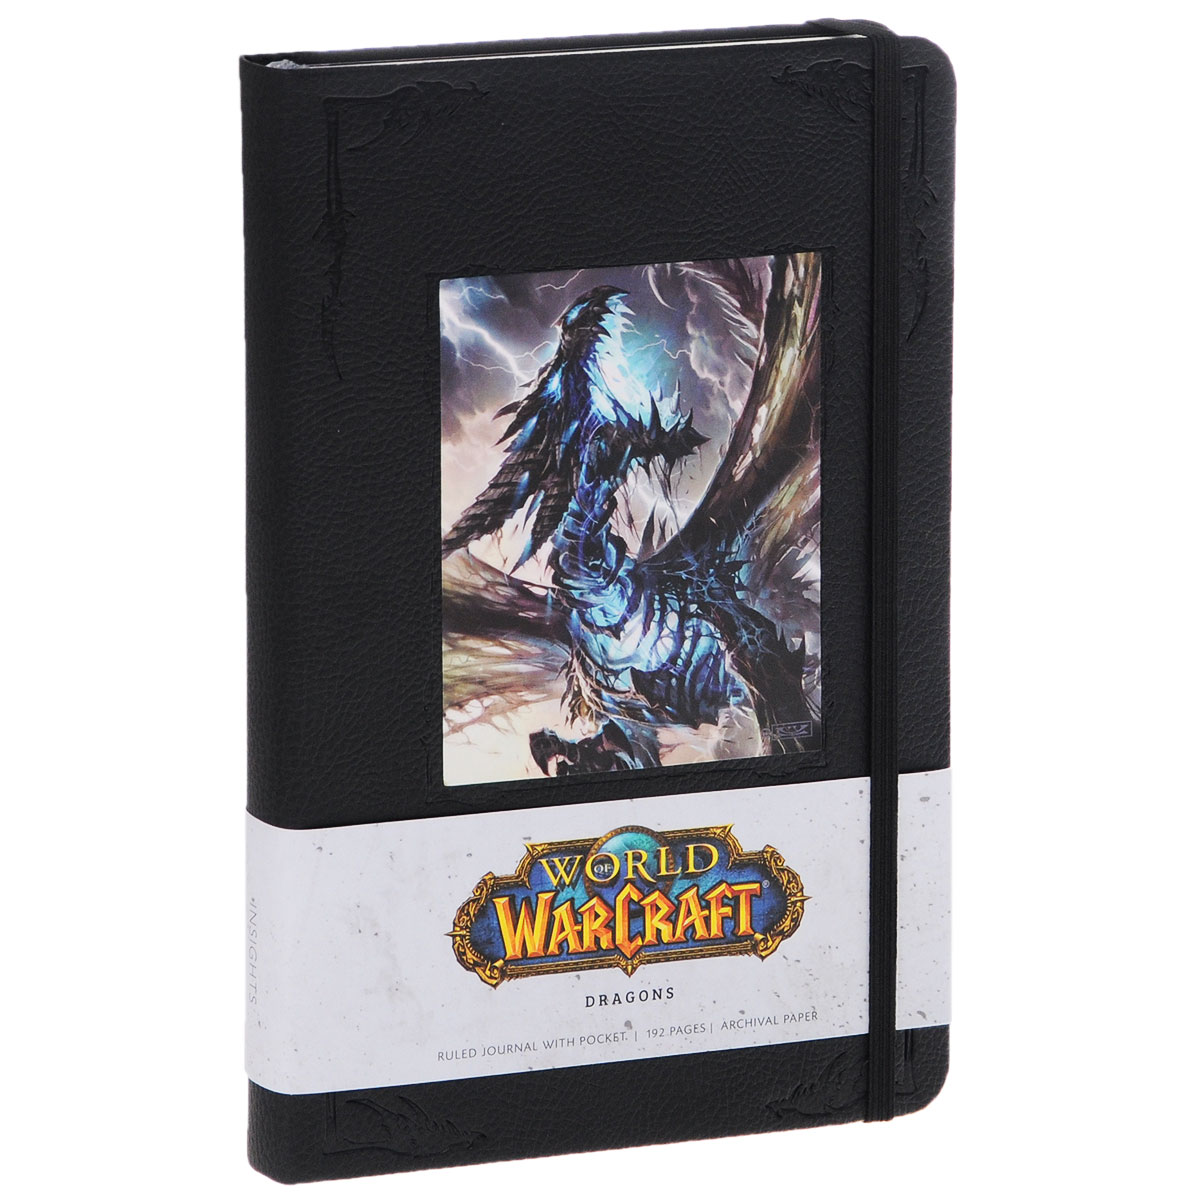 World of Warcraft Dragons Journal this globalizing world